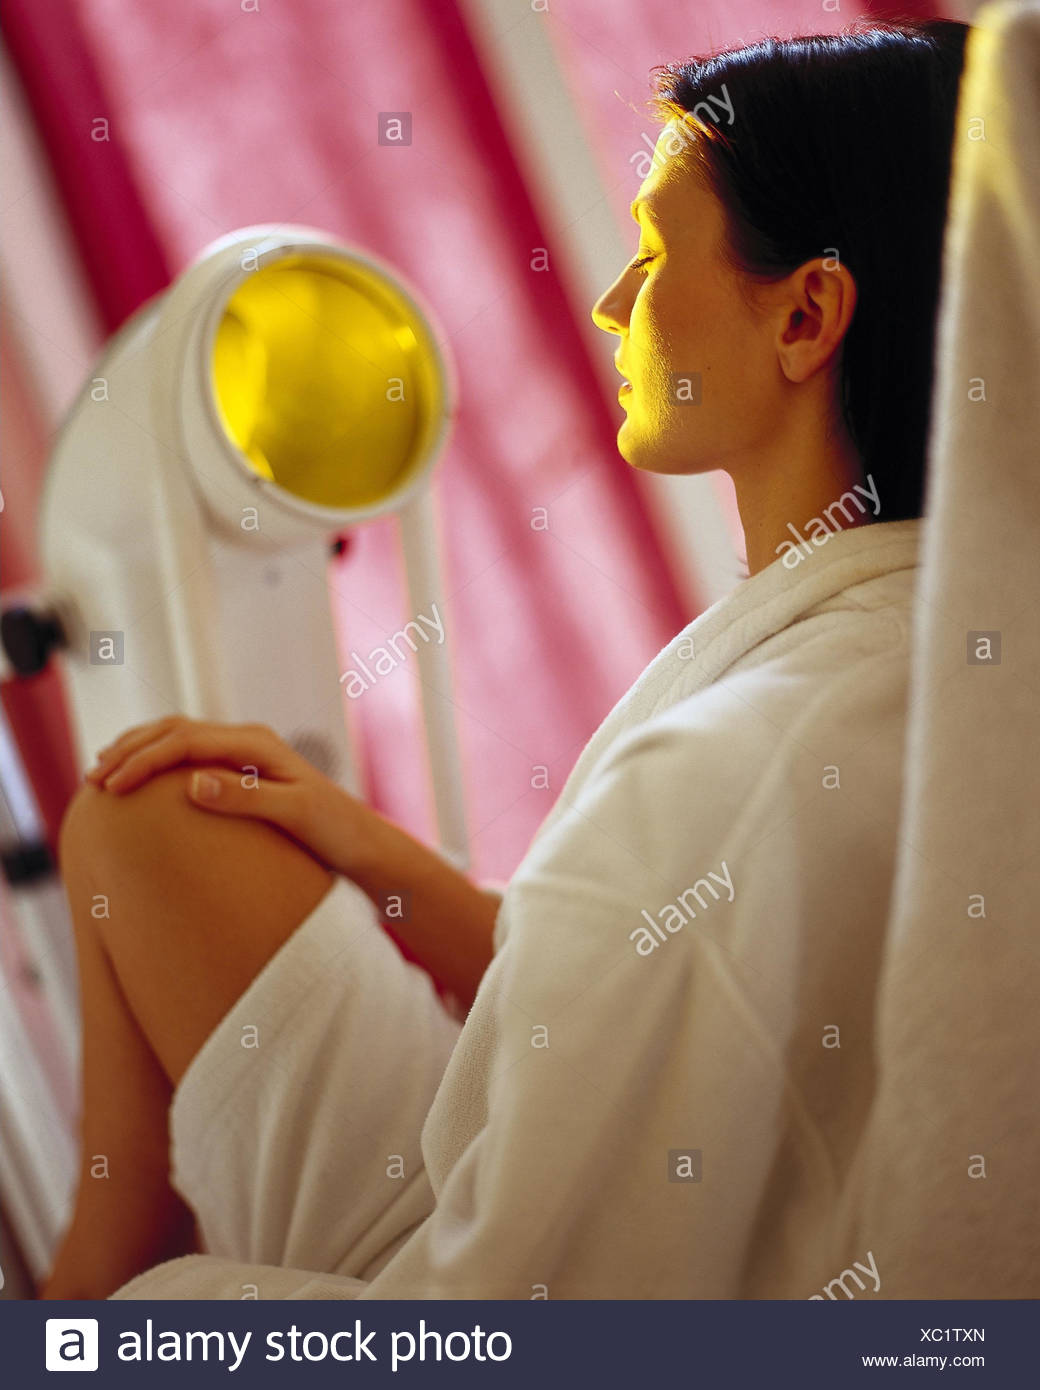 Treatment chair, Bioptron lamp, woman, look, irradiate inside, young, biology light therapy, light therapy, treatment, cosmetically, medically, irradiation, near - Stock Image